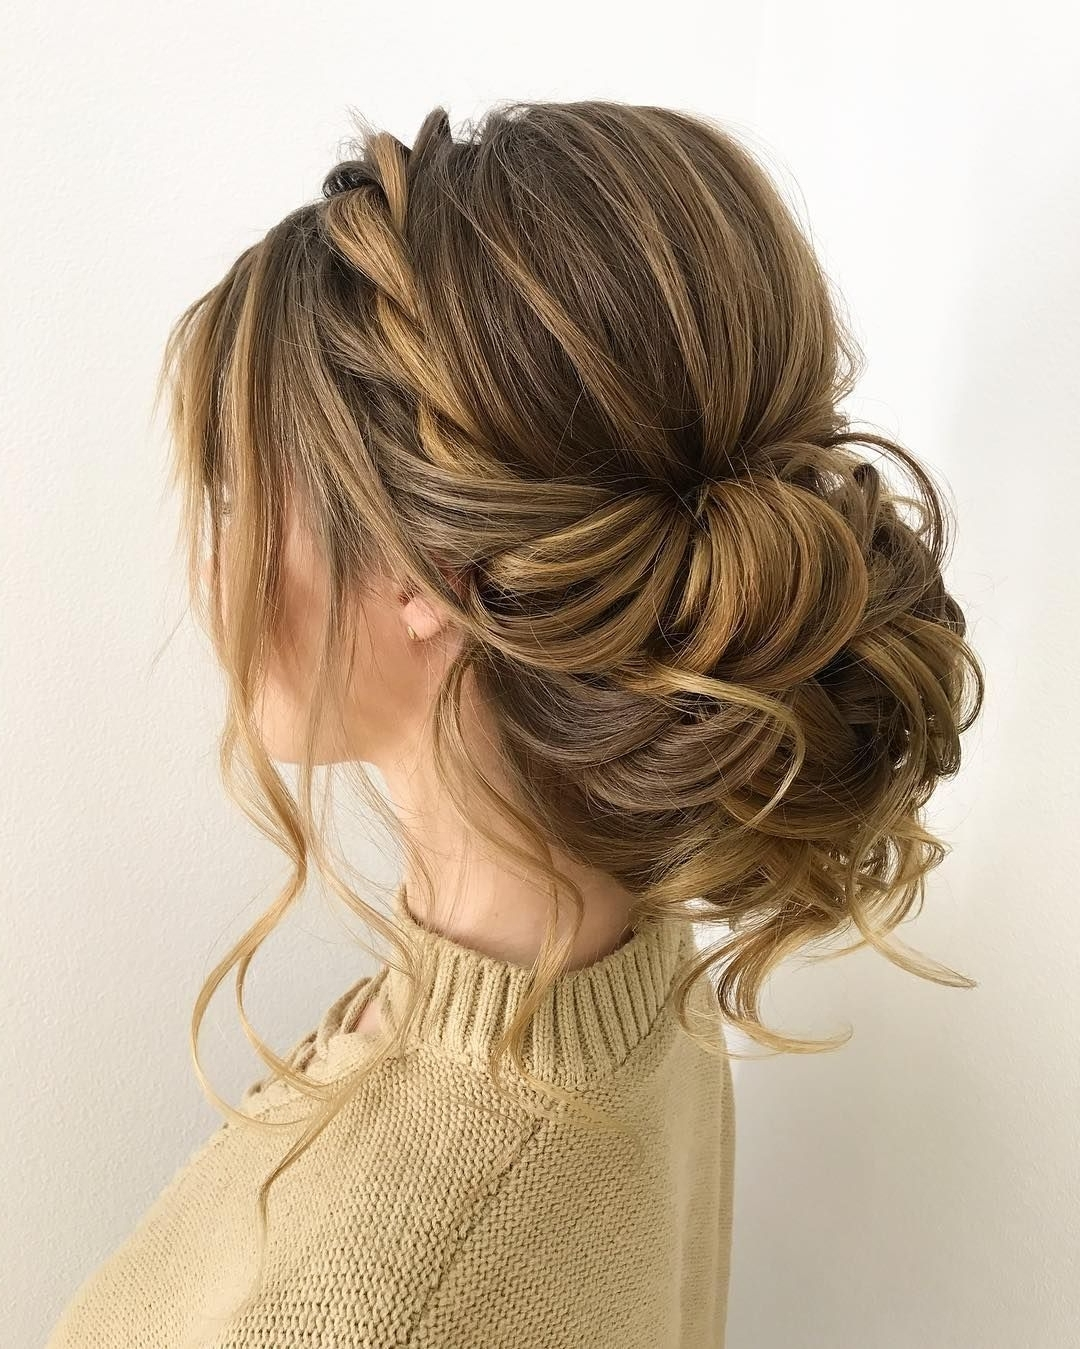 Gorgeous Wedding Updo Hairstyles That Will Wow Your Big Day Throughout Updo Hairstyles For Weddings Long Hair (View 9 of 15)